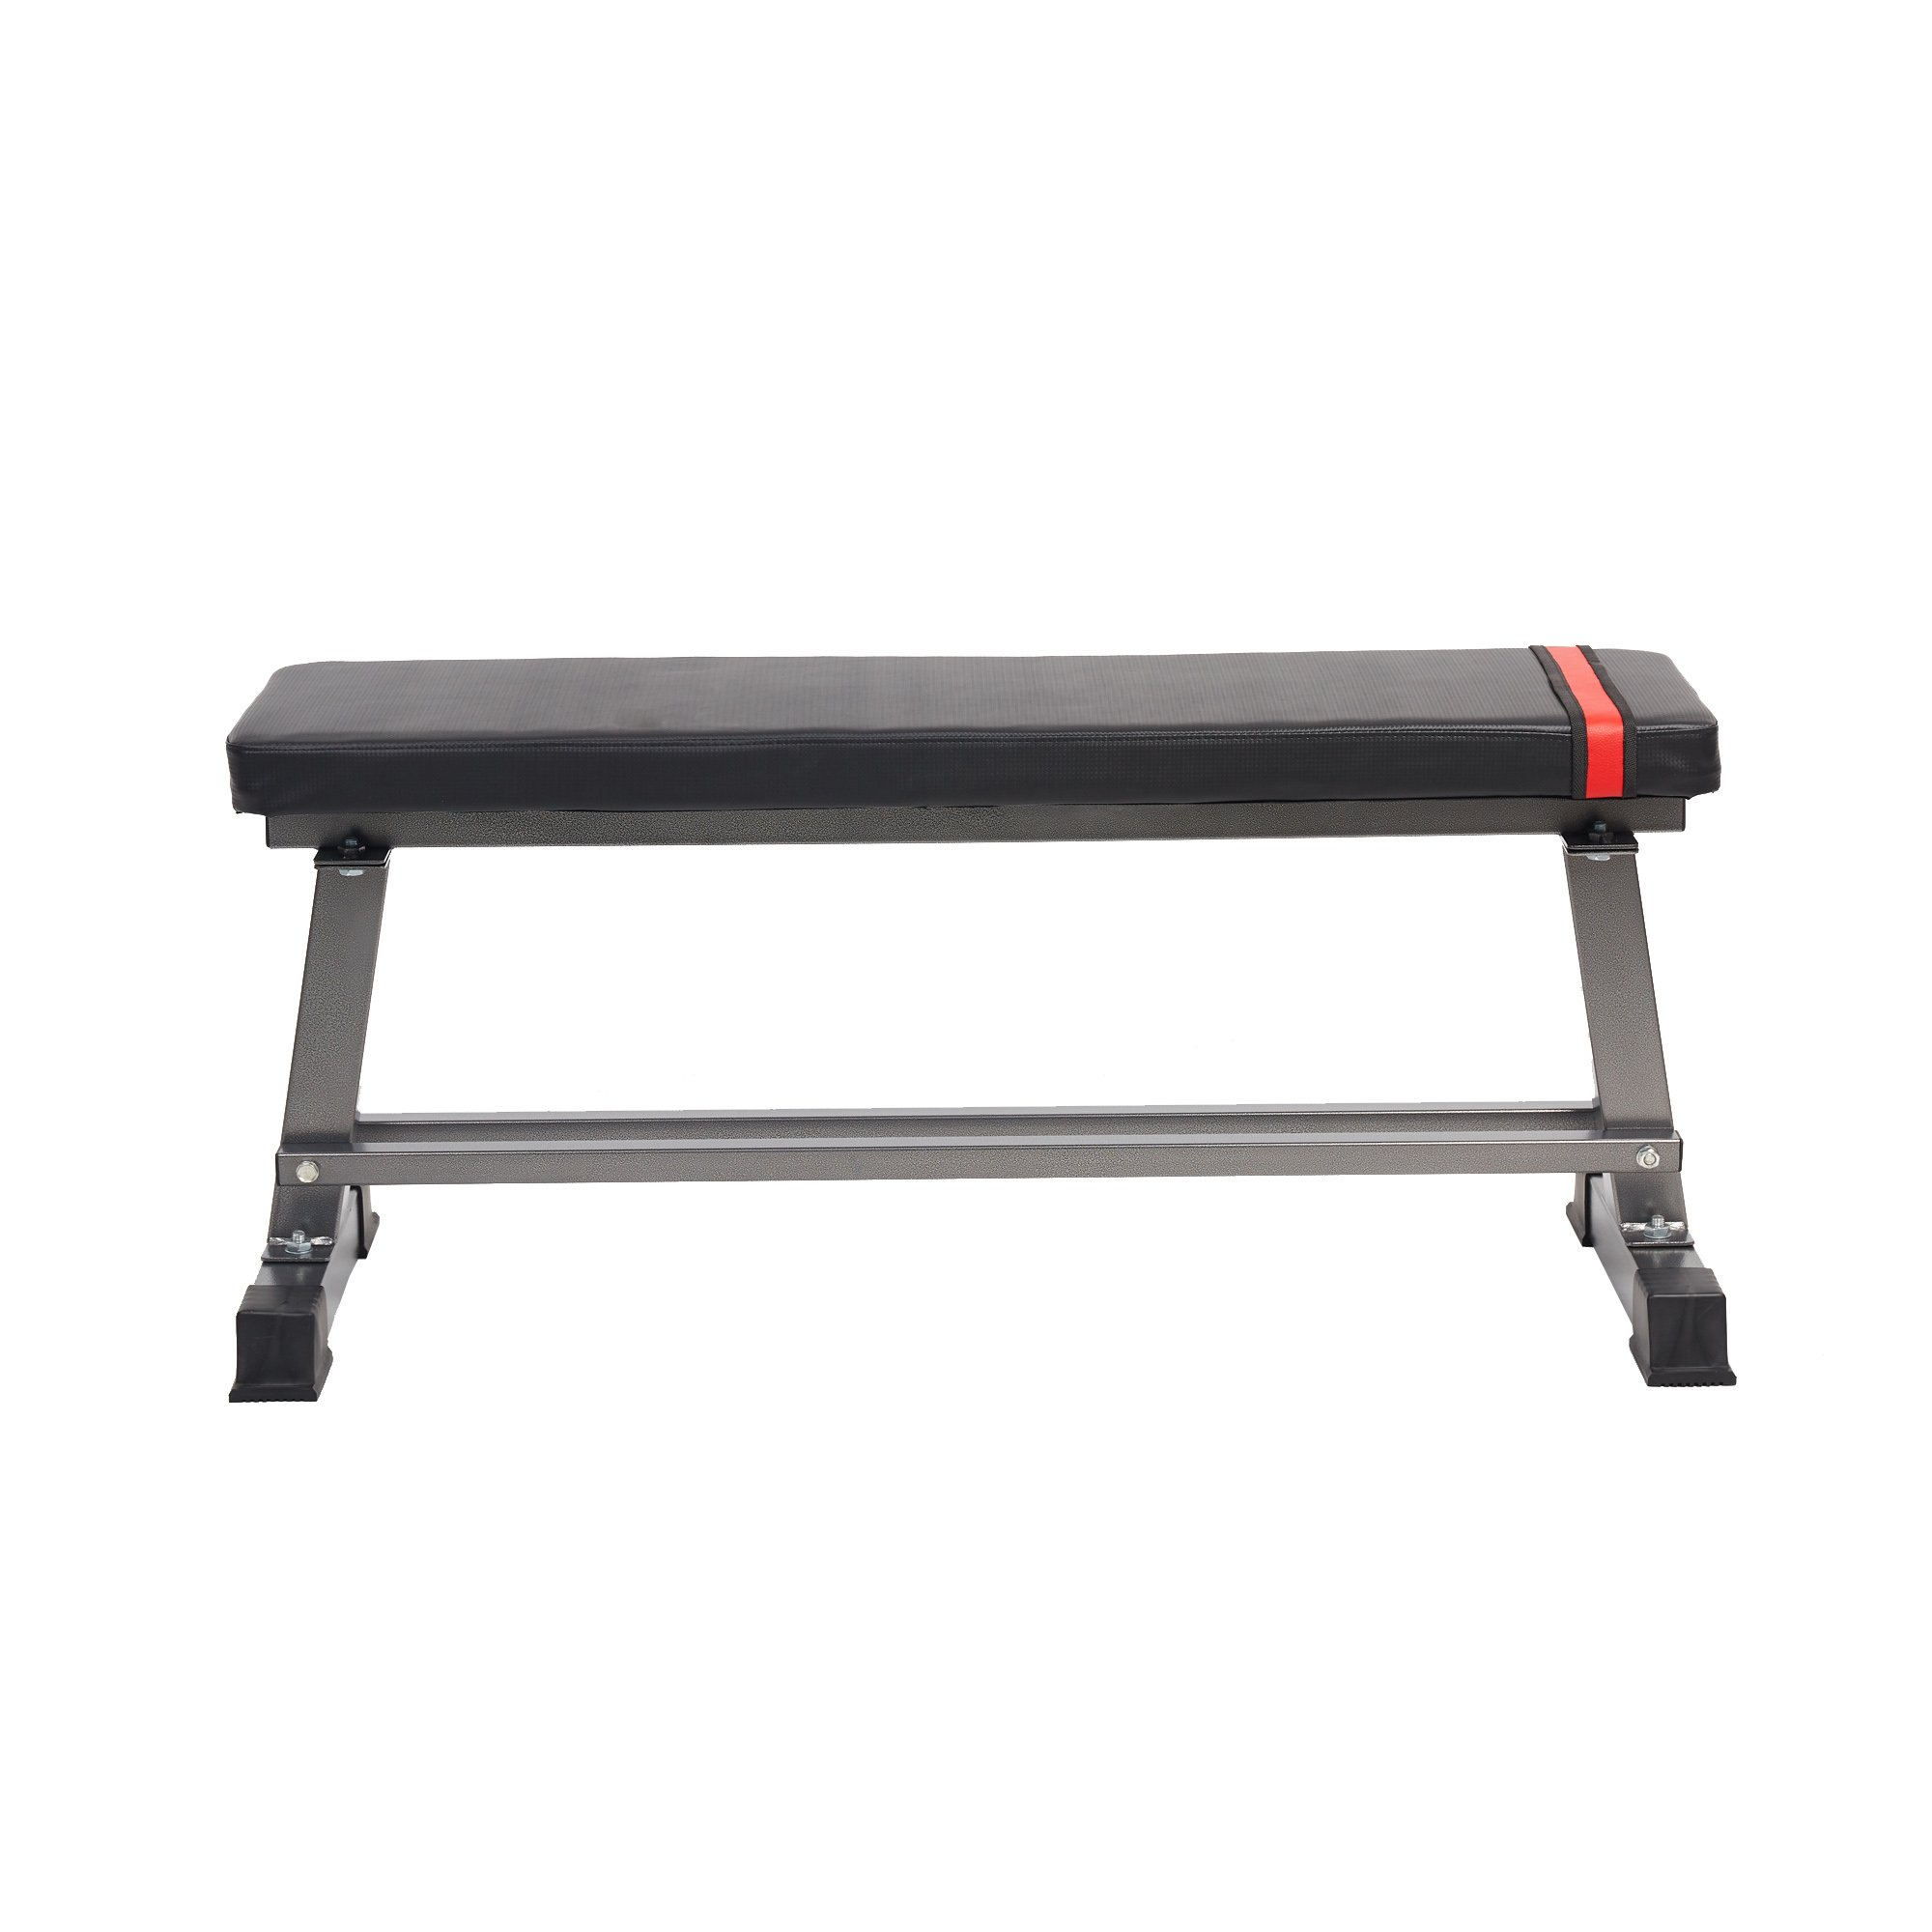 Karmas Product Flat Bench Workout with Steel Frame